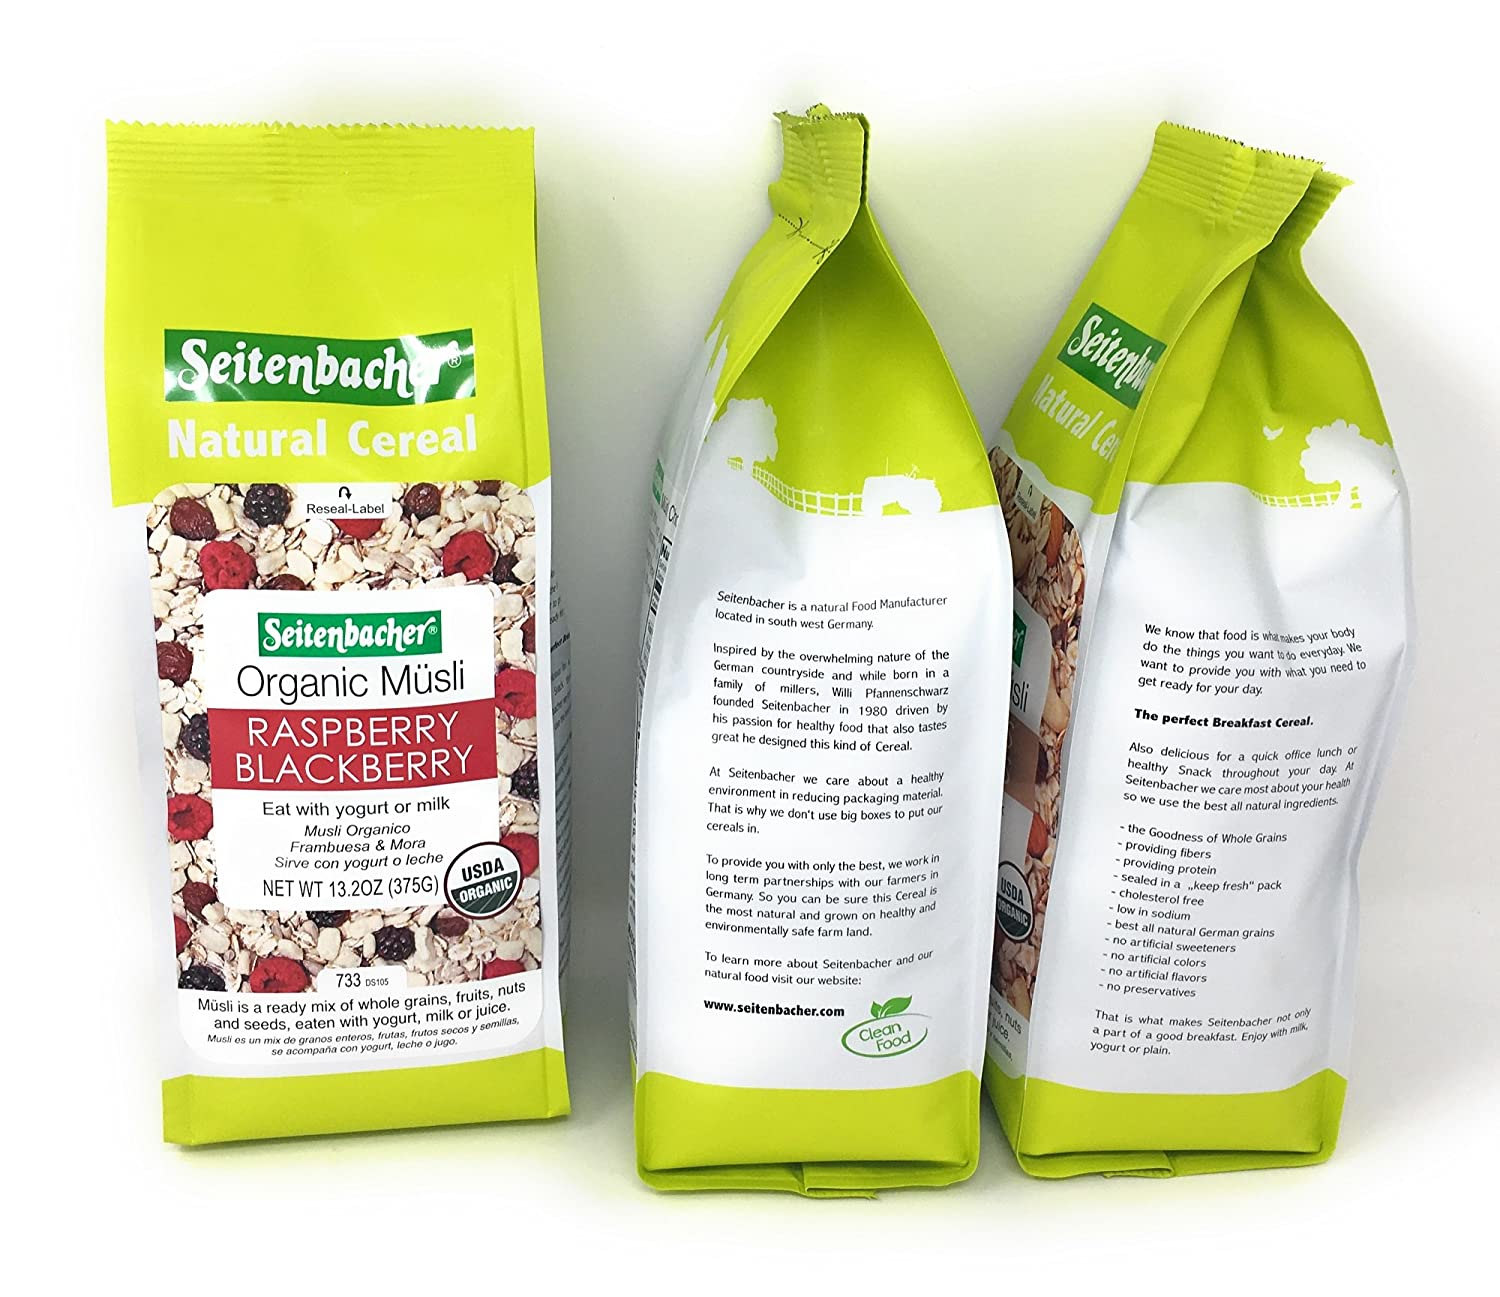 Amazon.com: Seitenbacher Organic Musli Bundle of Three Flavors: 16 Ounce Choco Coco, 13.2 Ounce Raspberry Blackberry, and 16 Ounce Cashews Almonds: